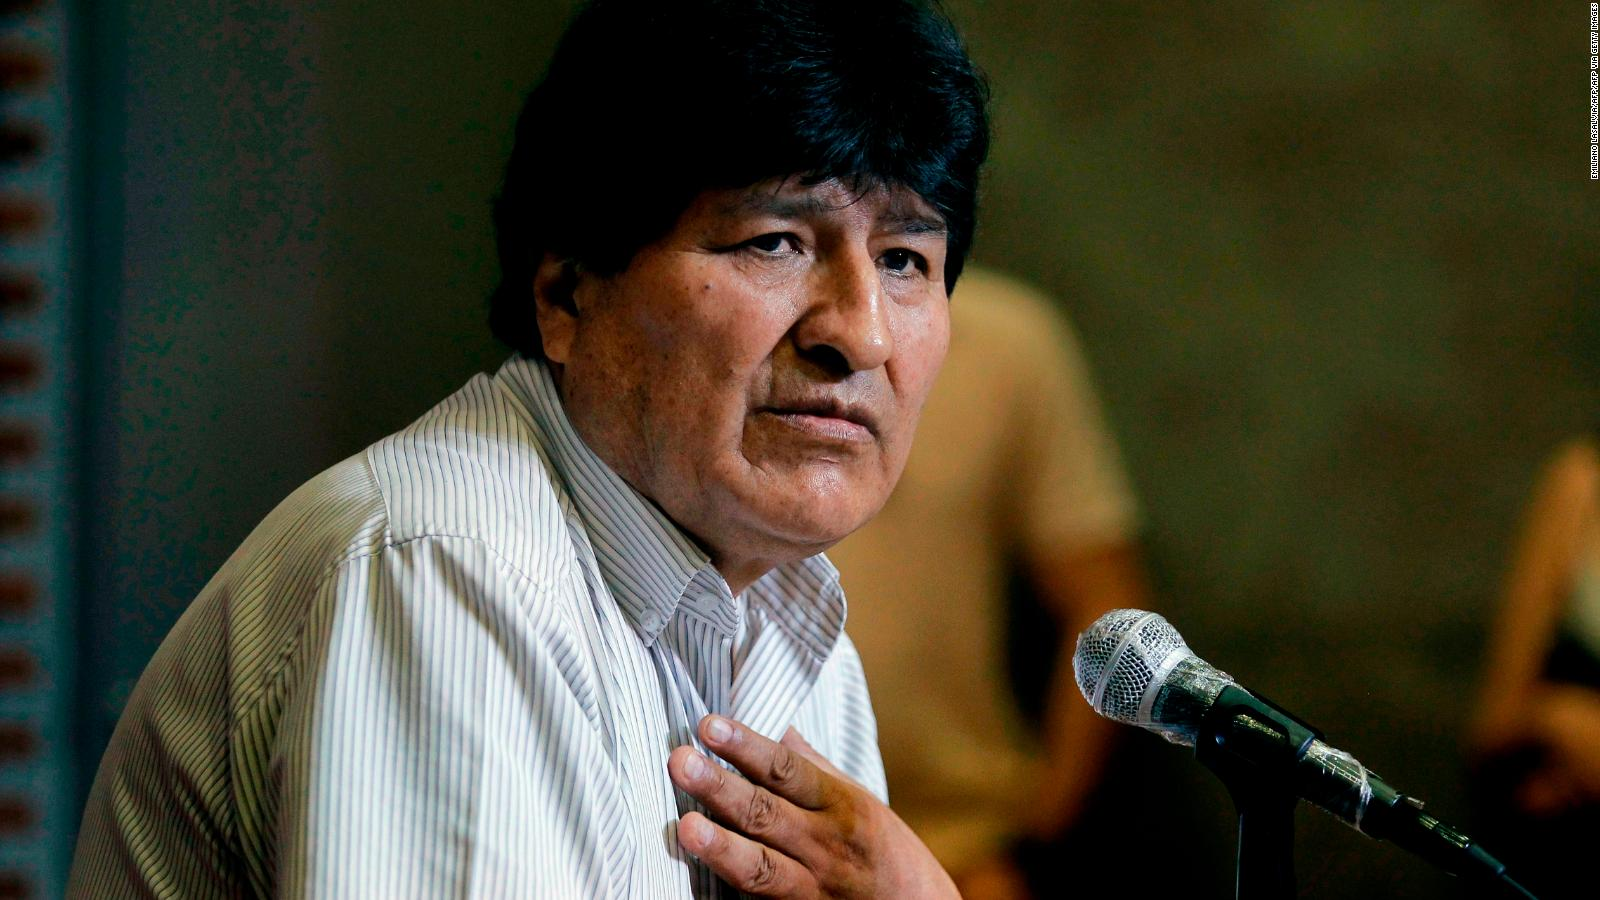 Evo Morales is discharged after covid-19 diagnosis